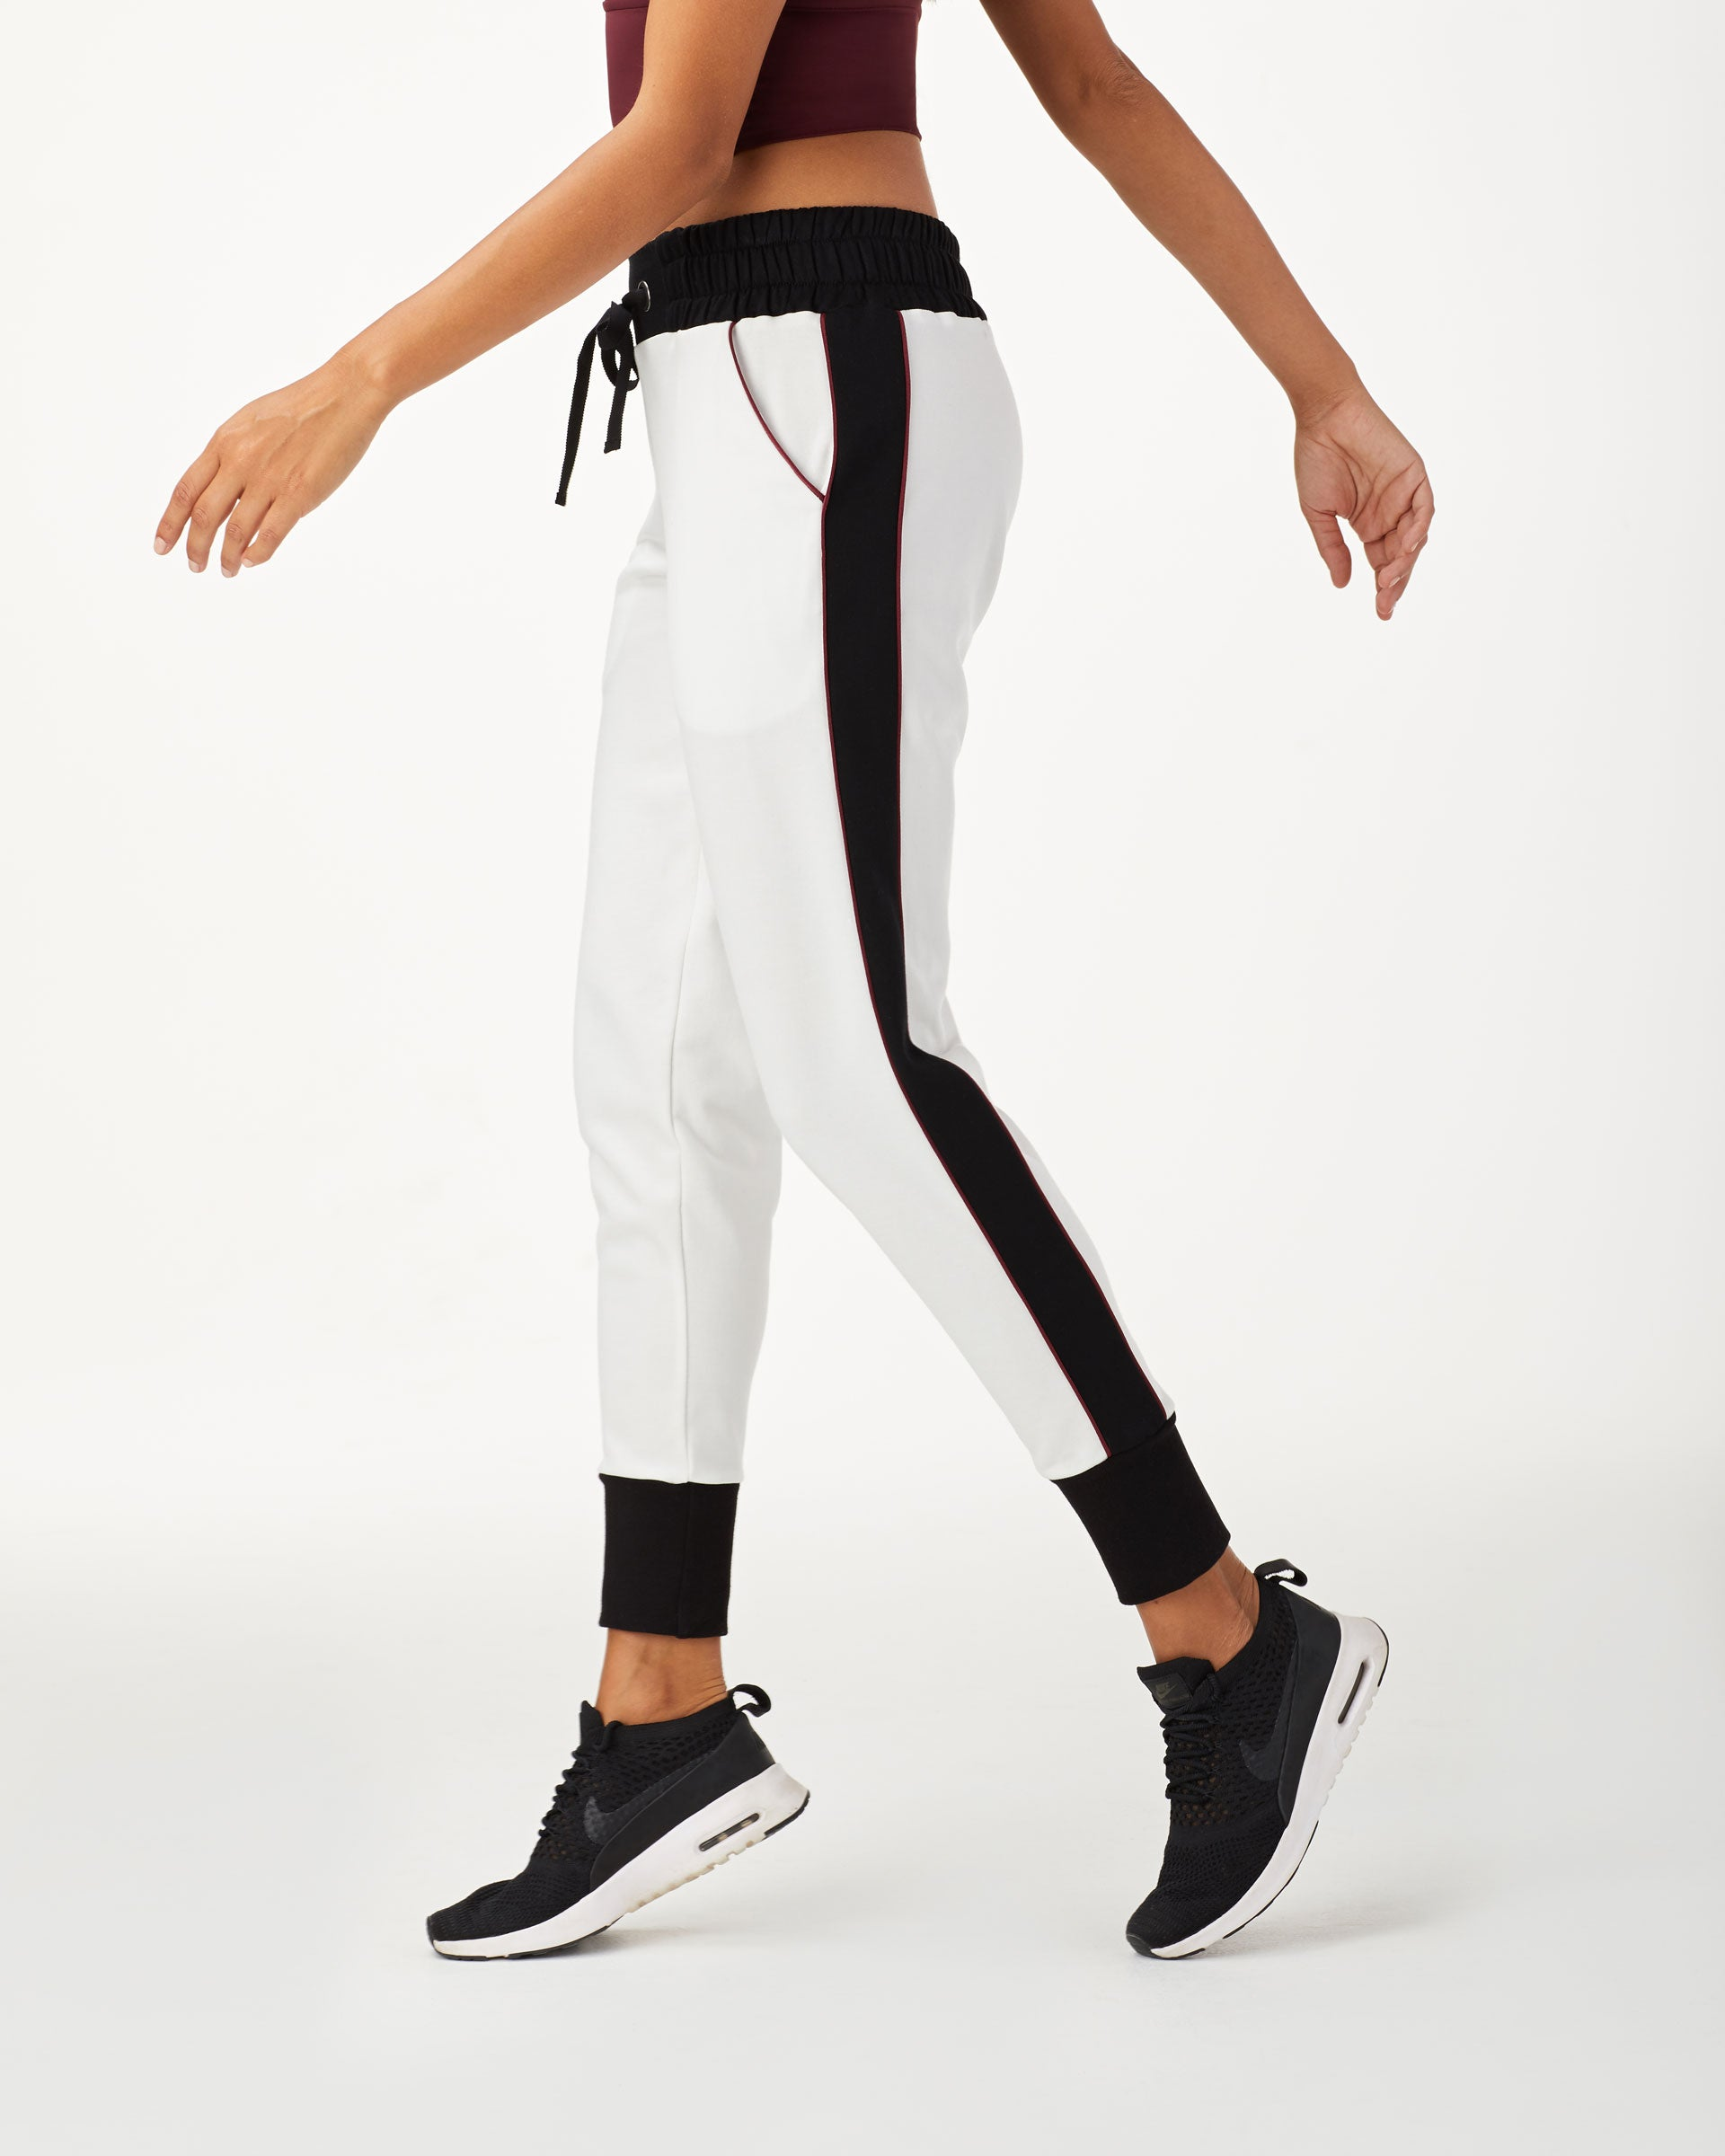 interstellar-sweatpant-ivory-black-wine